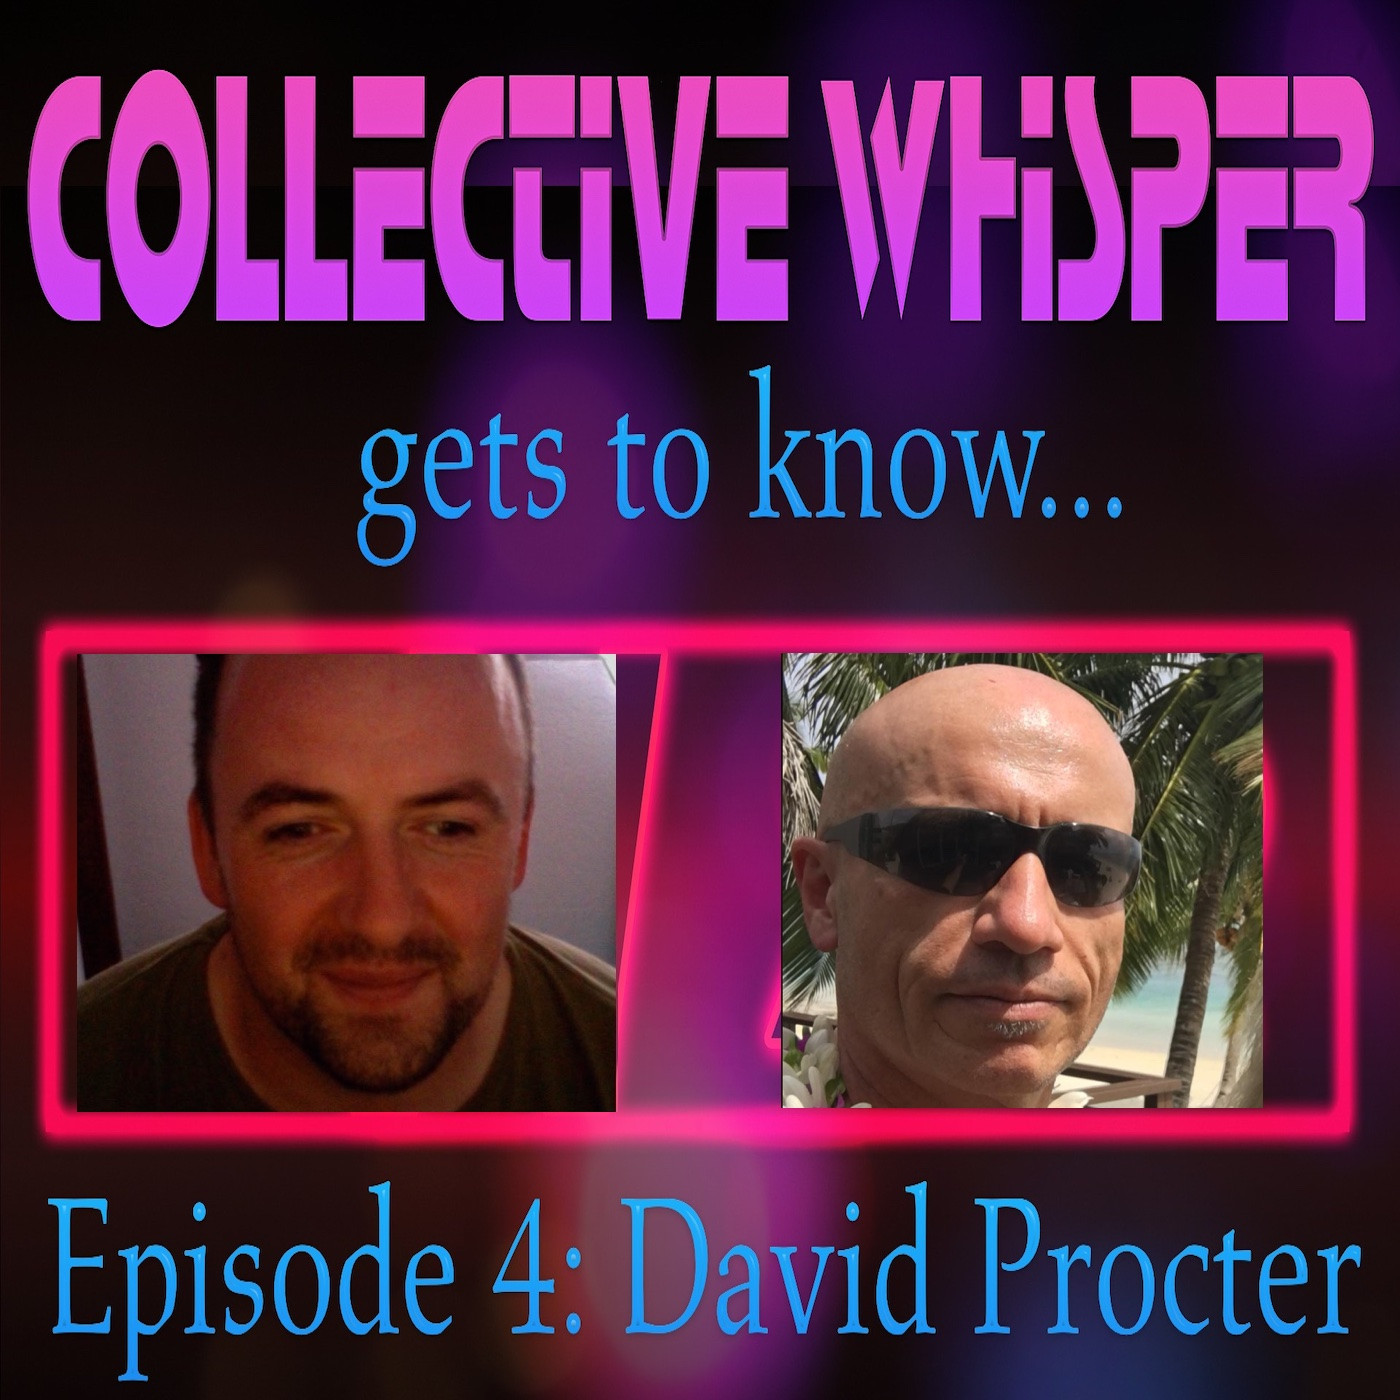 Collective Whisper gets to know.....David Procter